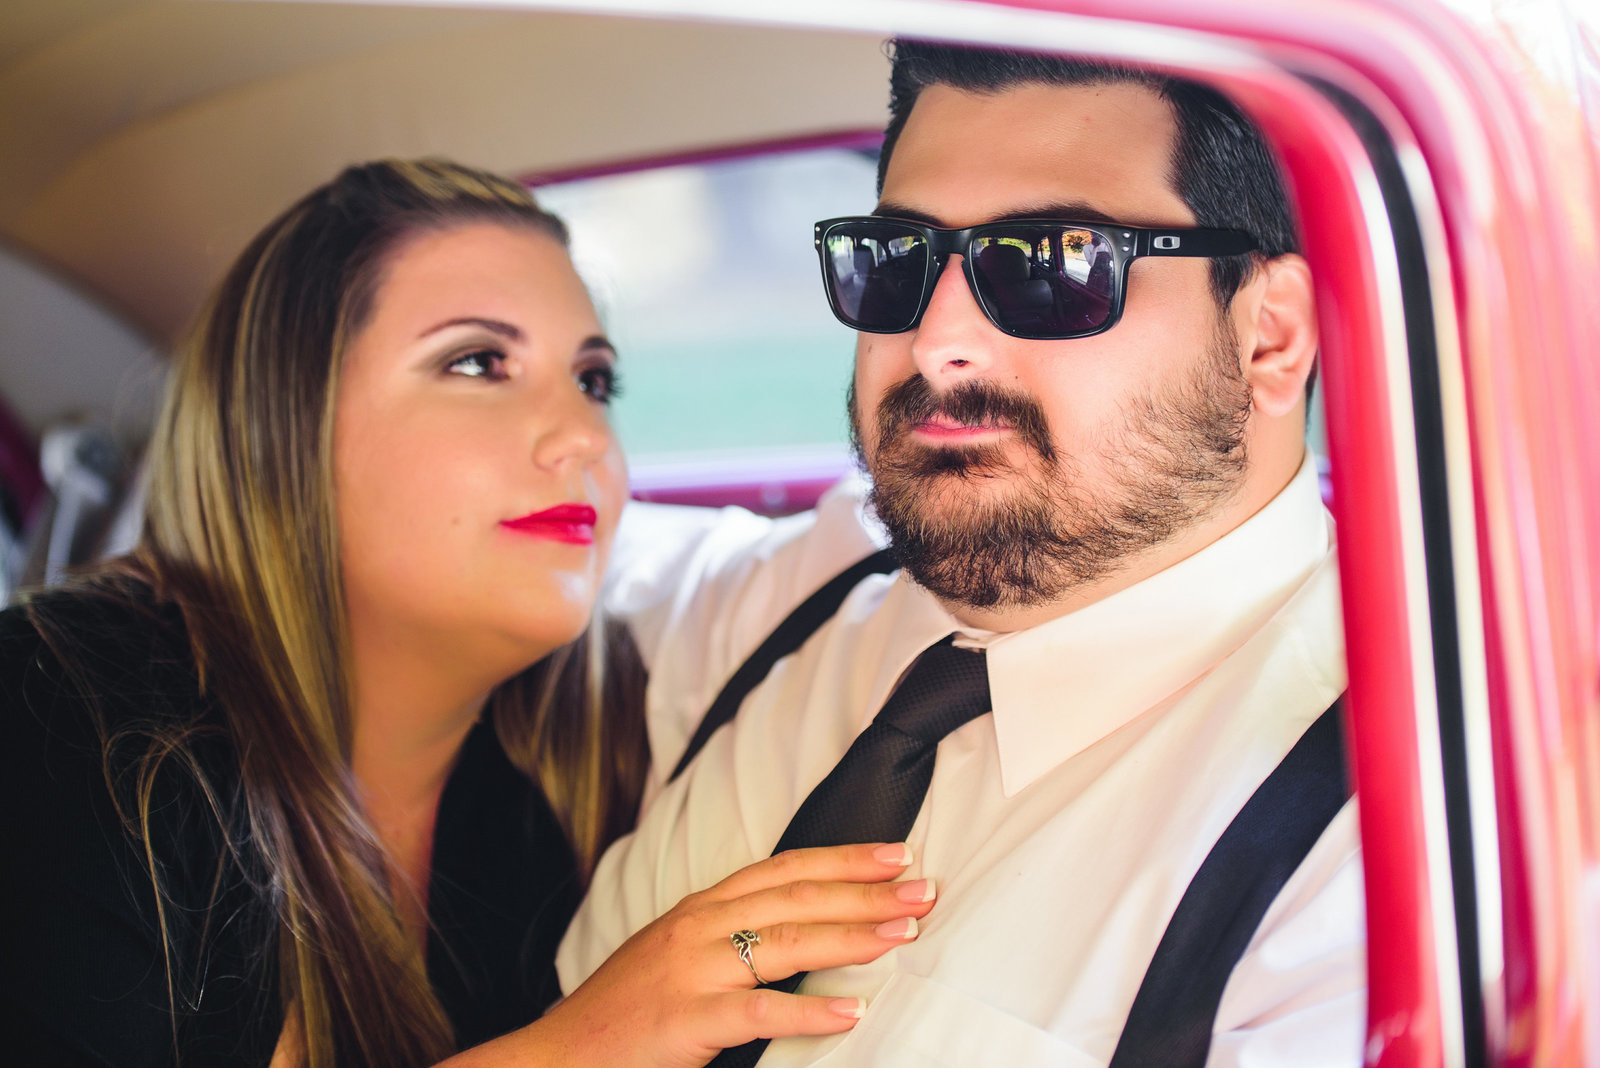 Retro_Pinup_Car_engagement_session_Nj024